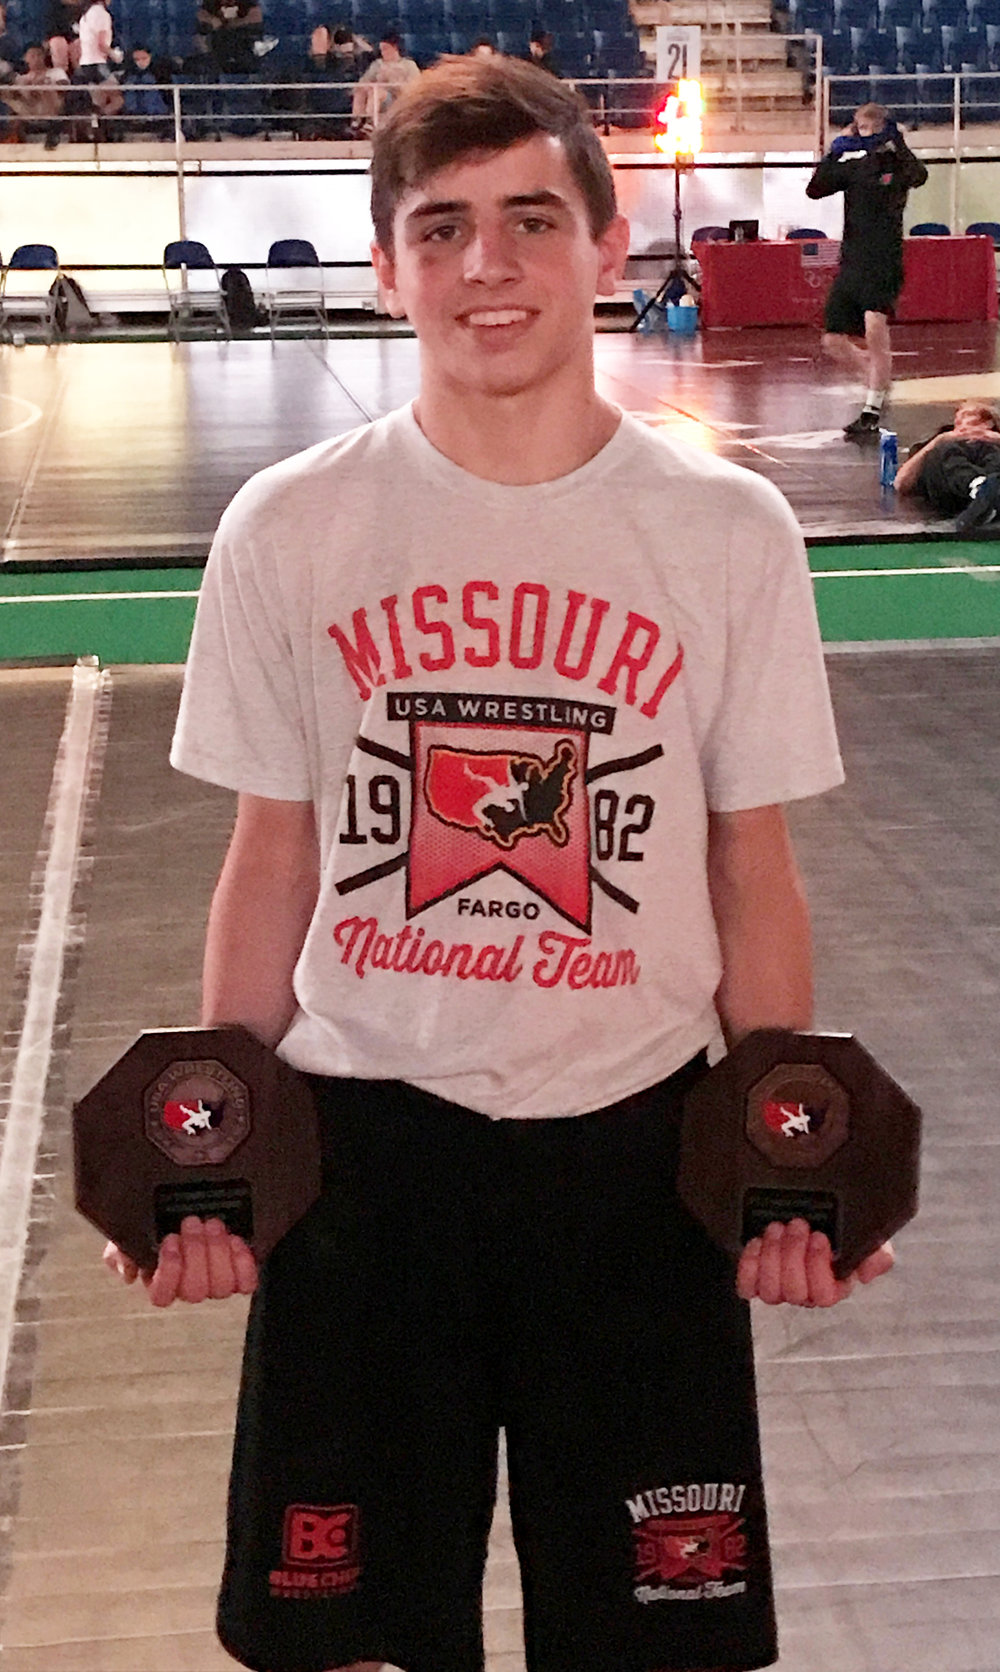 Contributed photo Platte County's Cody Phippen earned double All-American honors in the USA Wrestling Cadet/Junior Freestyle and Greco-Roman National Championships last month in Fargo, N.D.